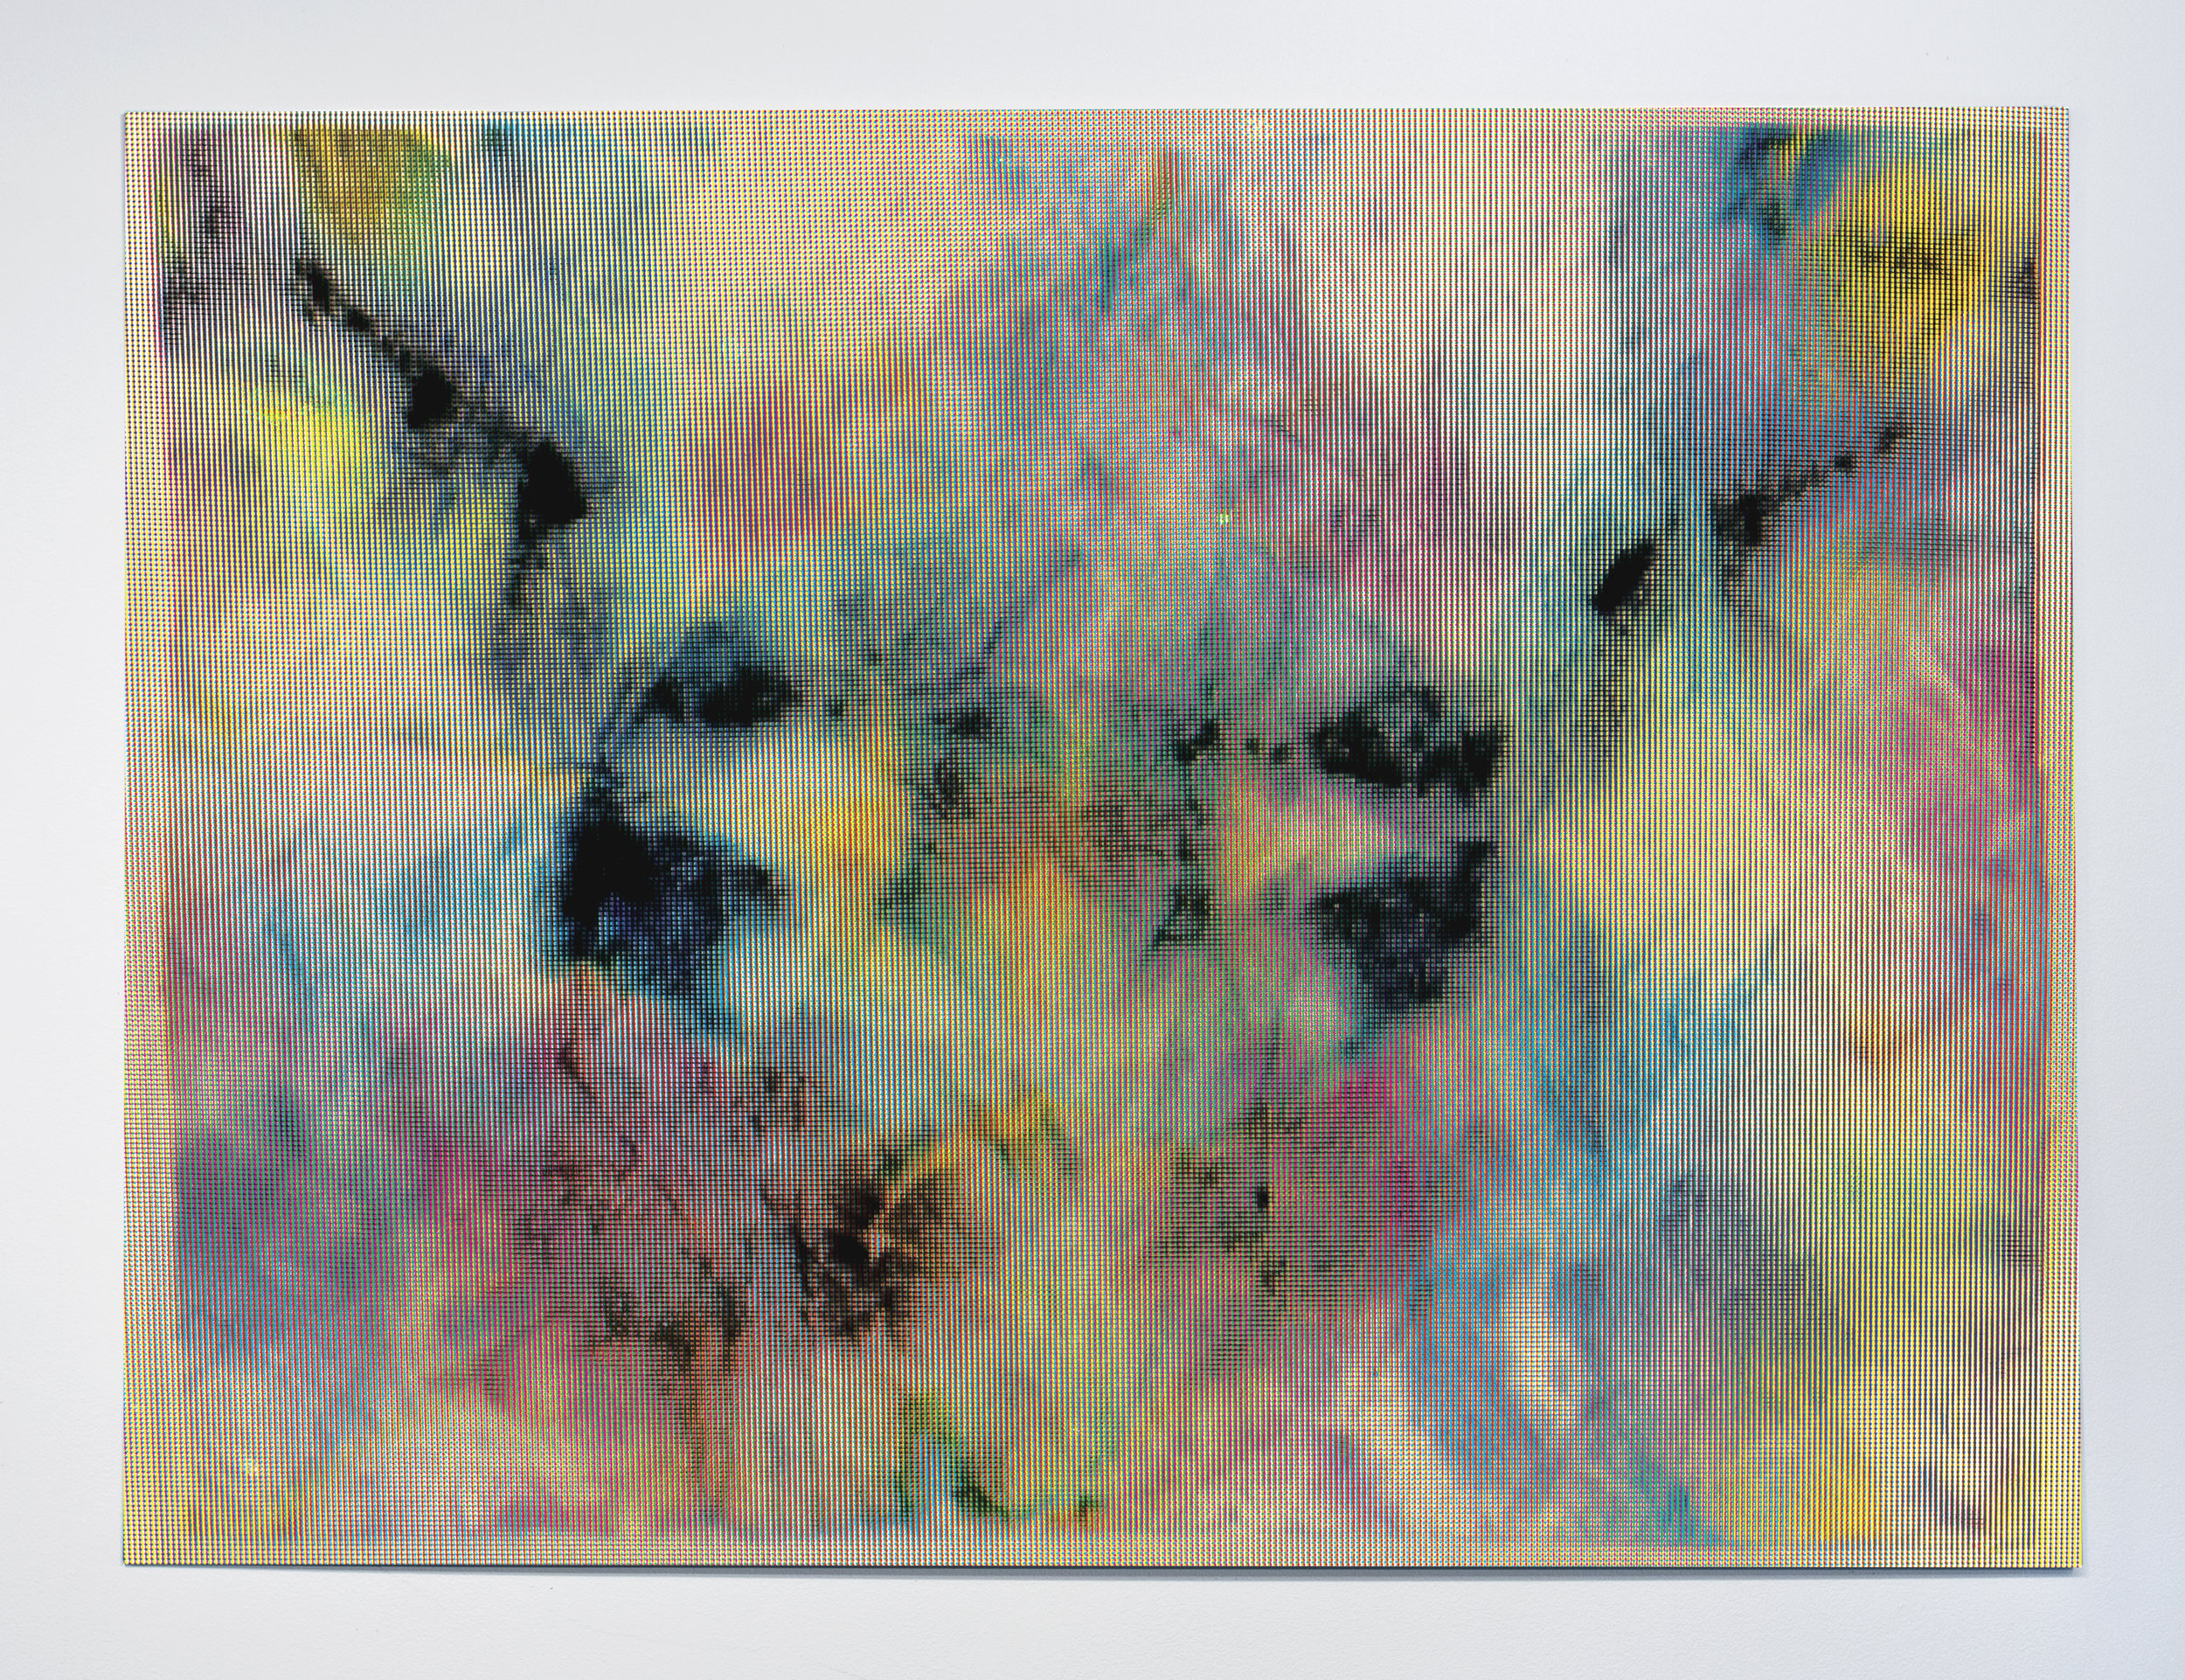 Untitled (Blot #1)